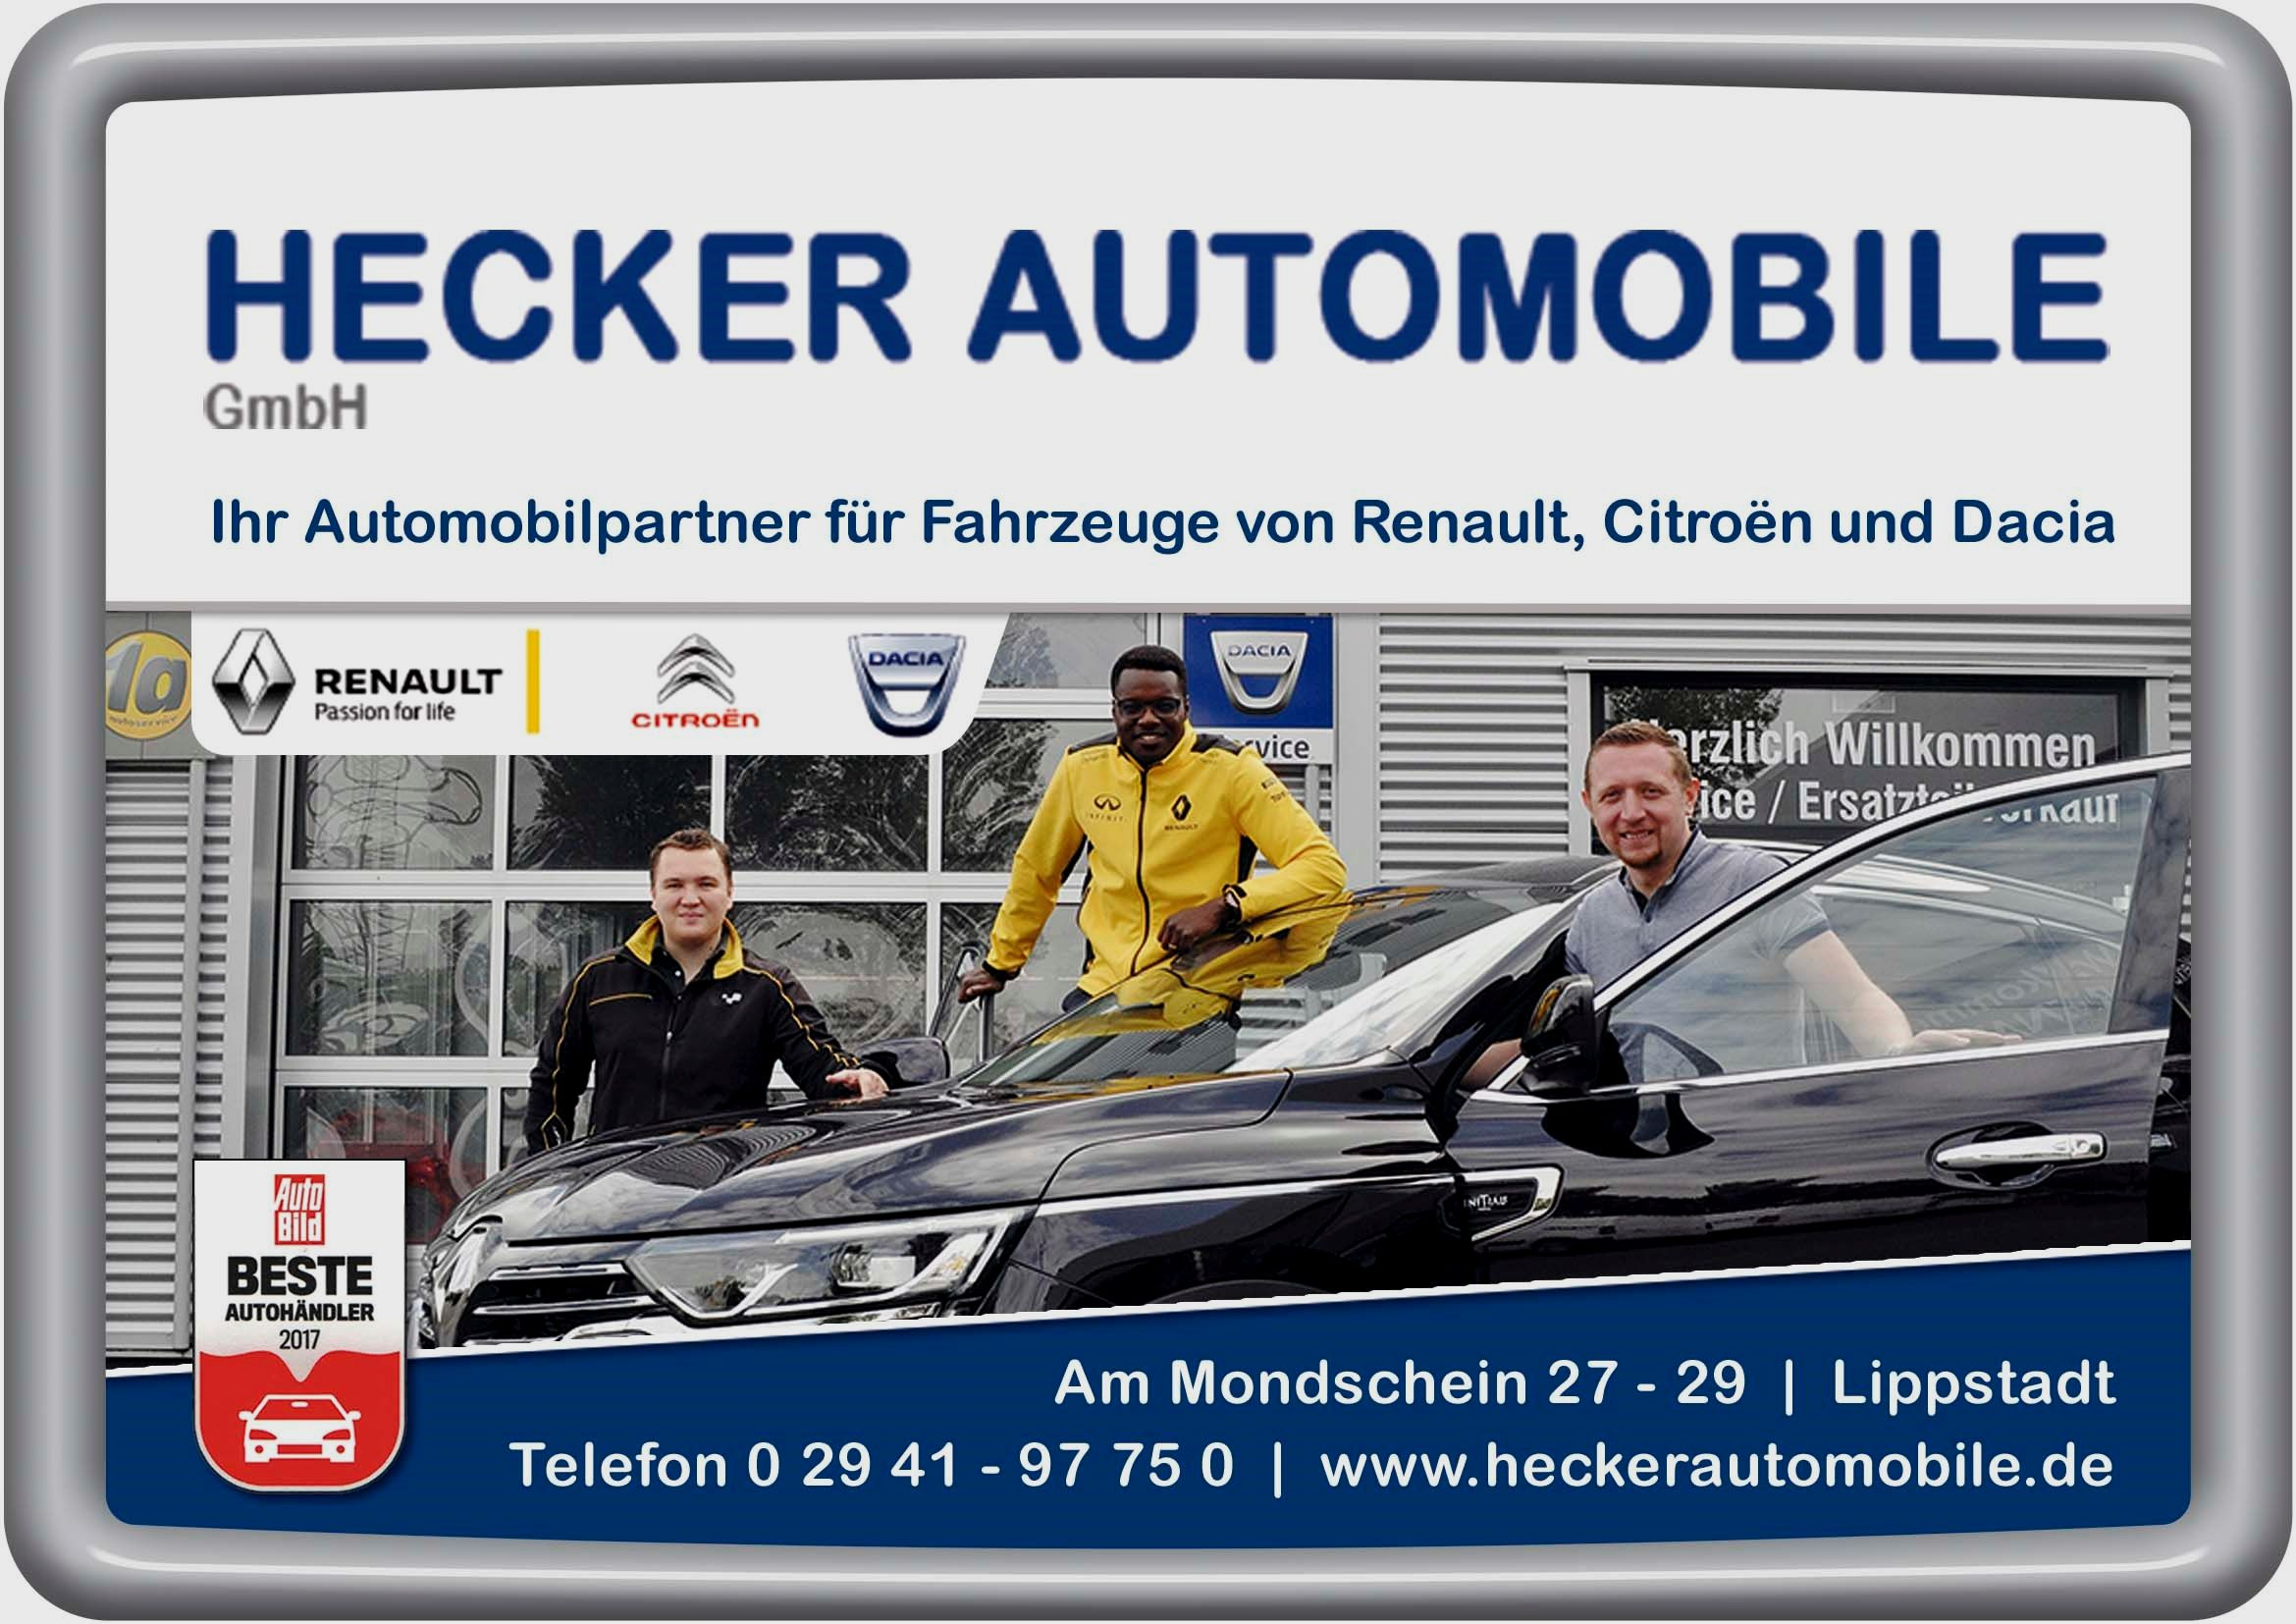 Hecker Automobile